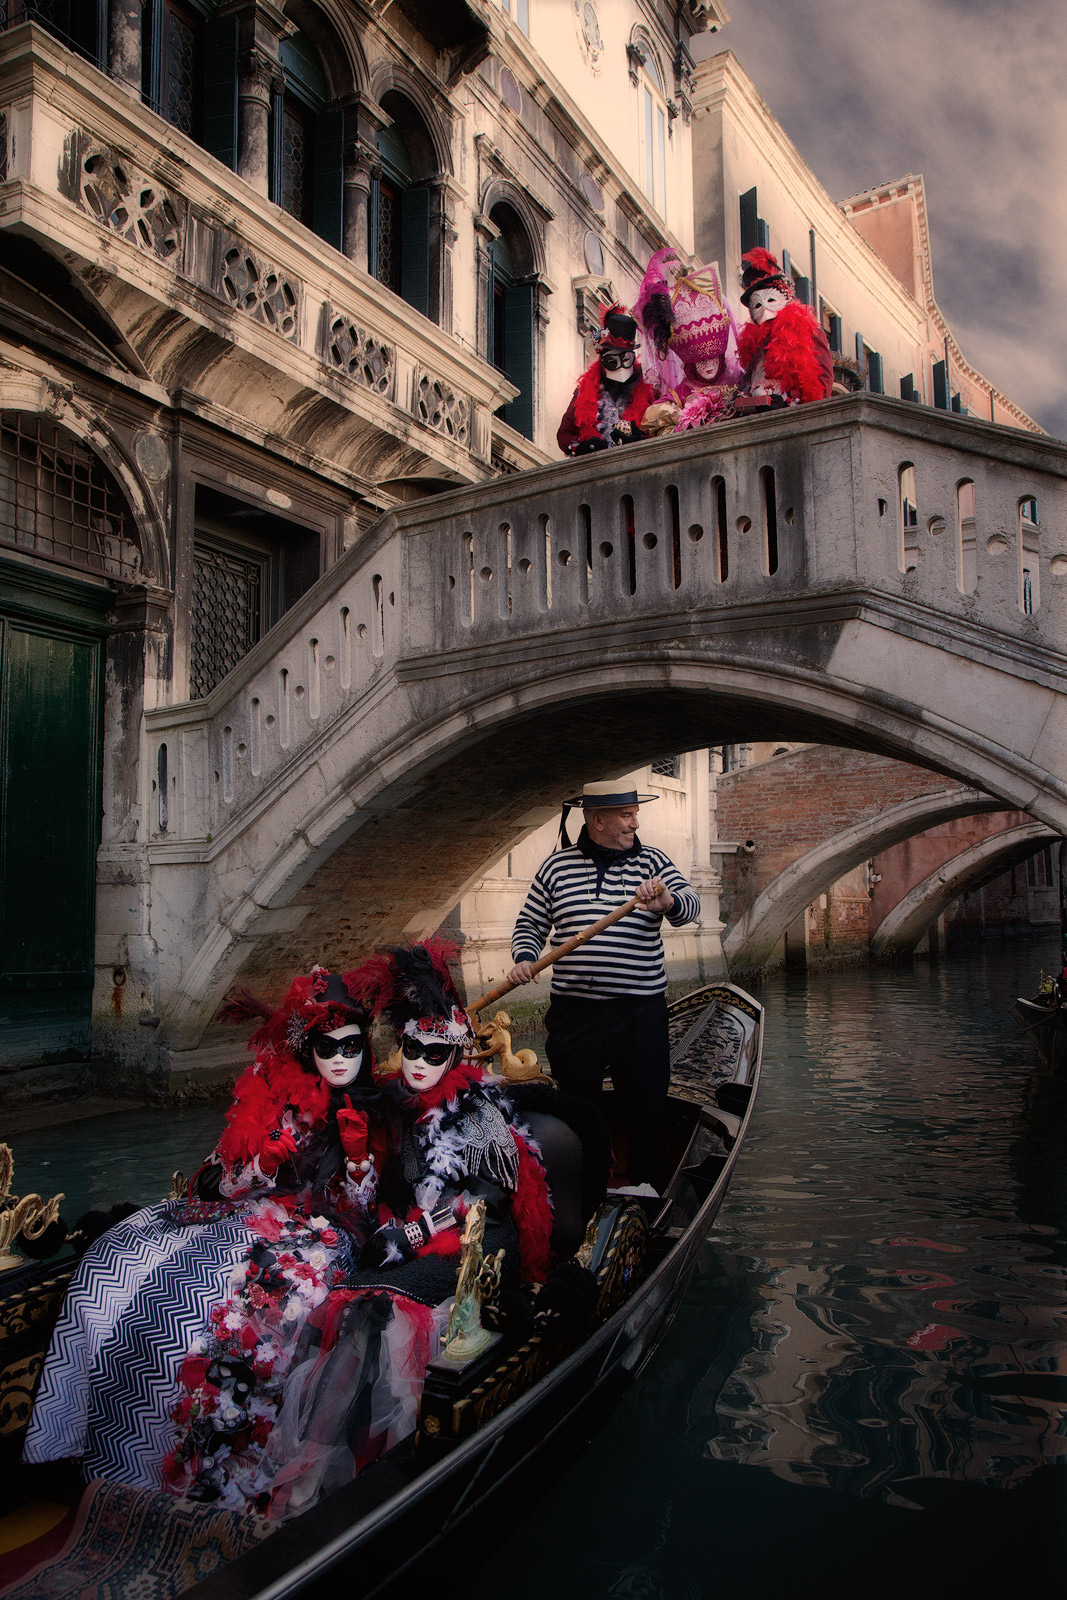 boat, canal, carnival, celebration, colorful, costume, europe, gondola, italy, mask, party, venice, vertical, photo